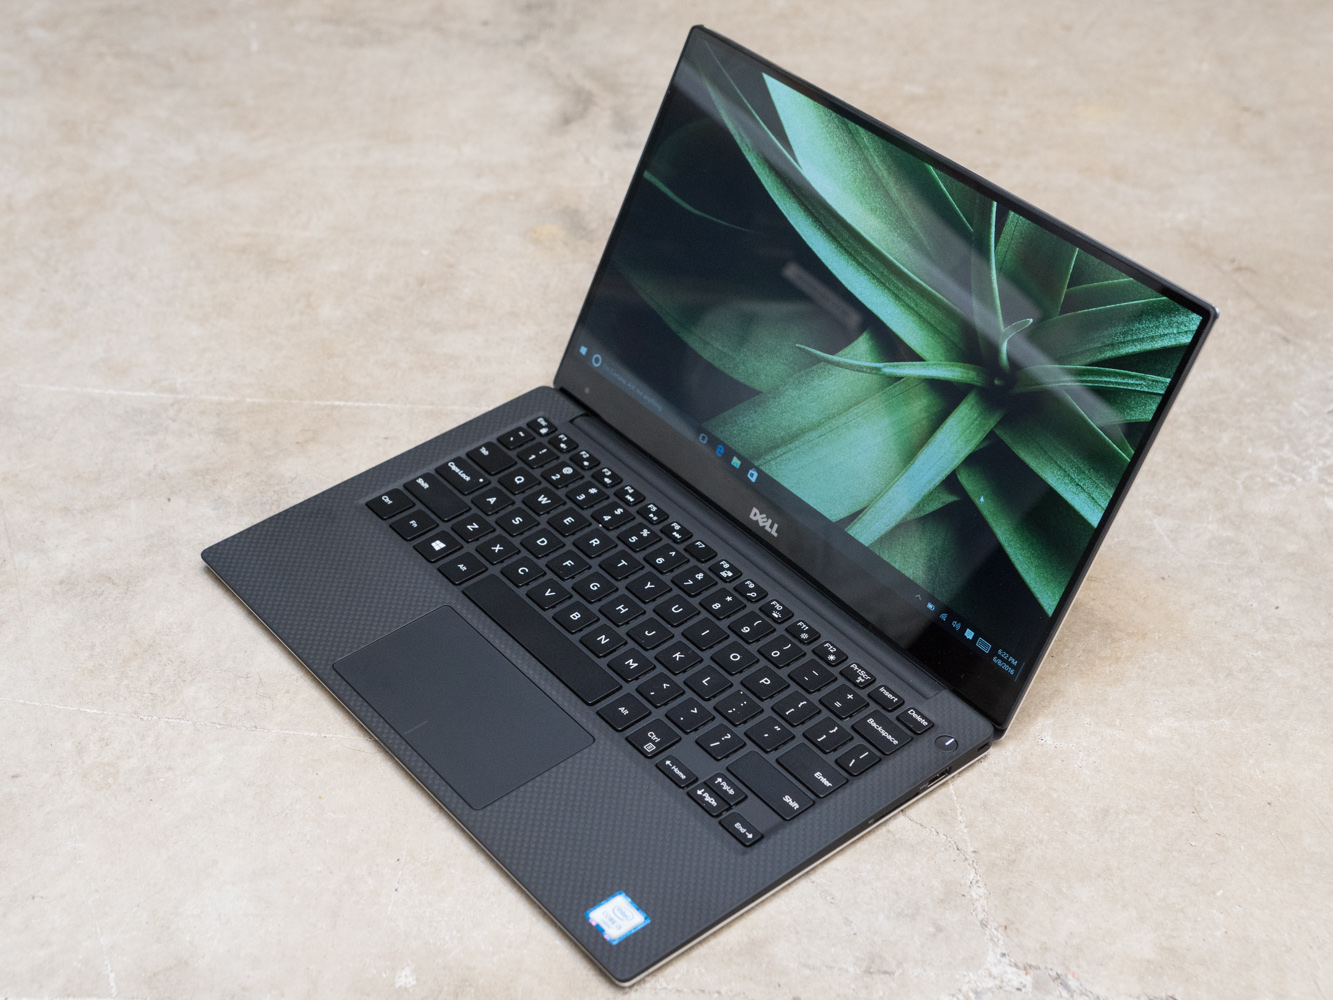 Dell Xps 13 2016 Review An Ultrabook Improvement